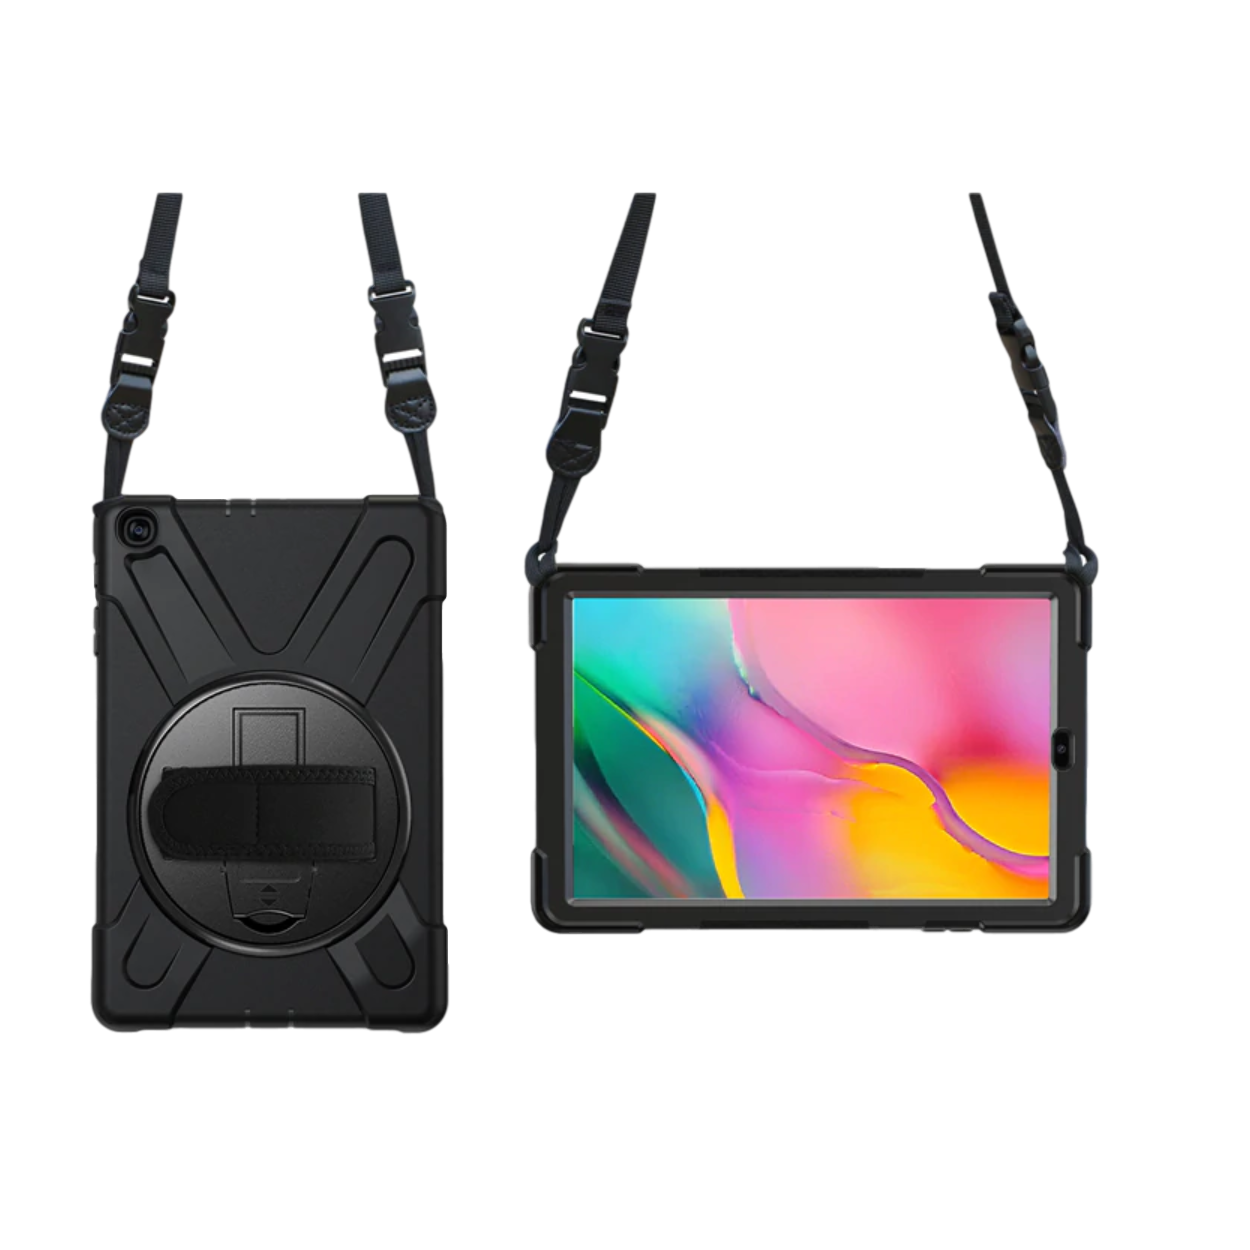 The rear and front view of the black Galaxy Tab A 10.5 case